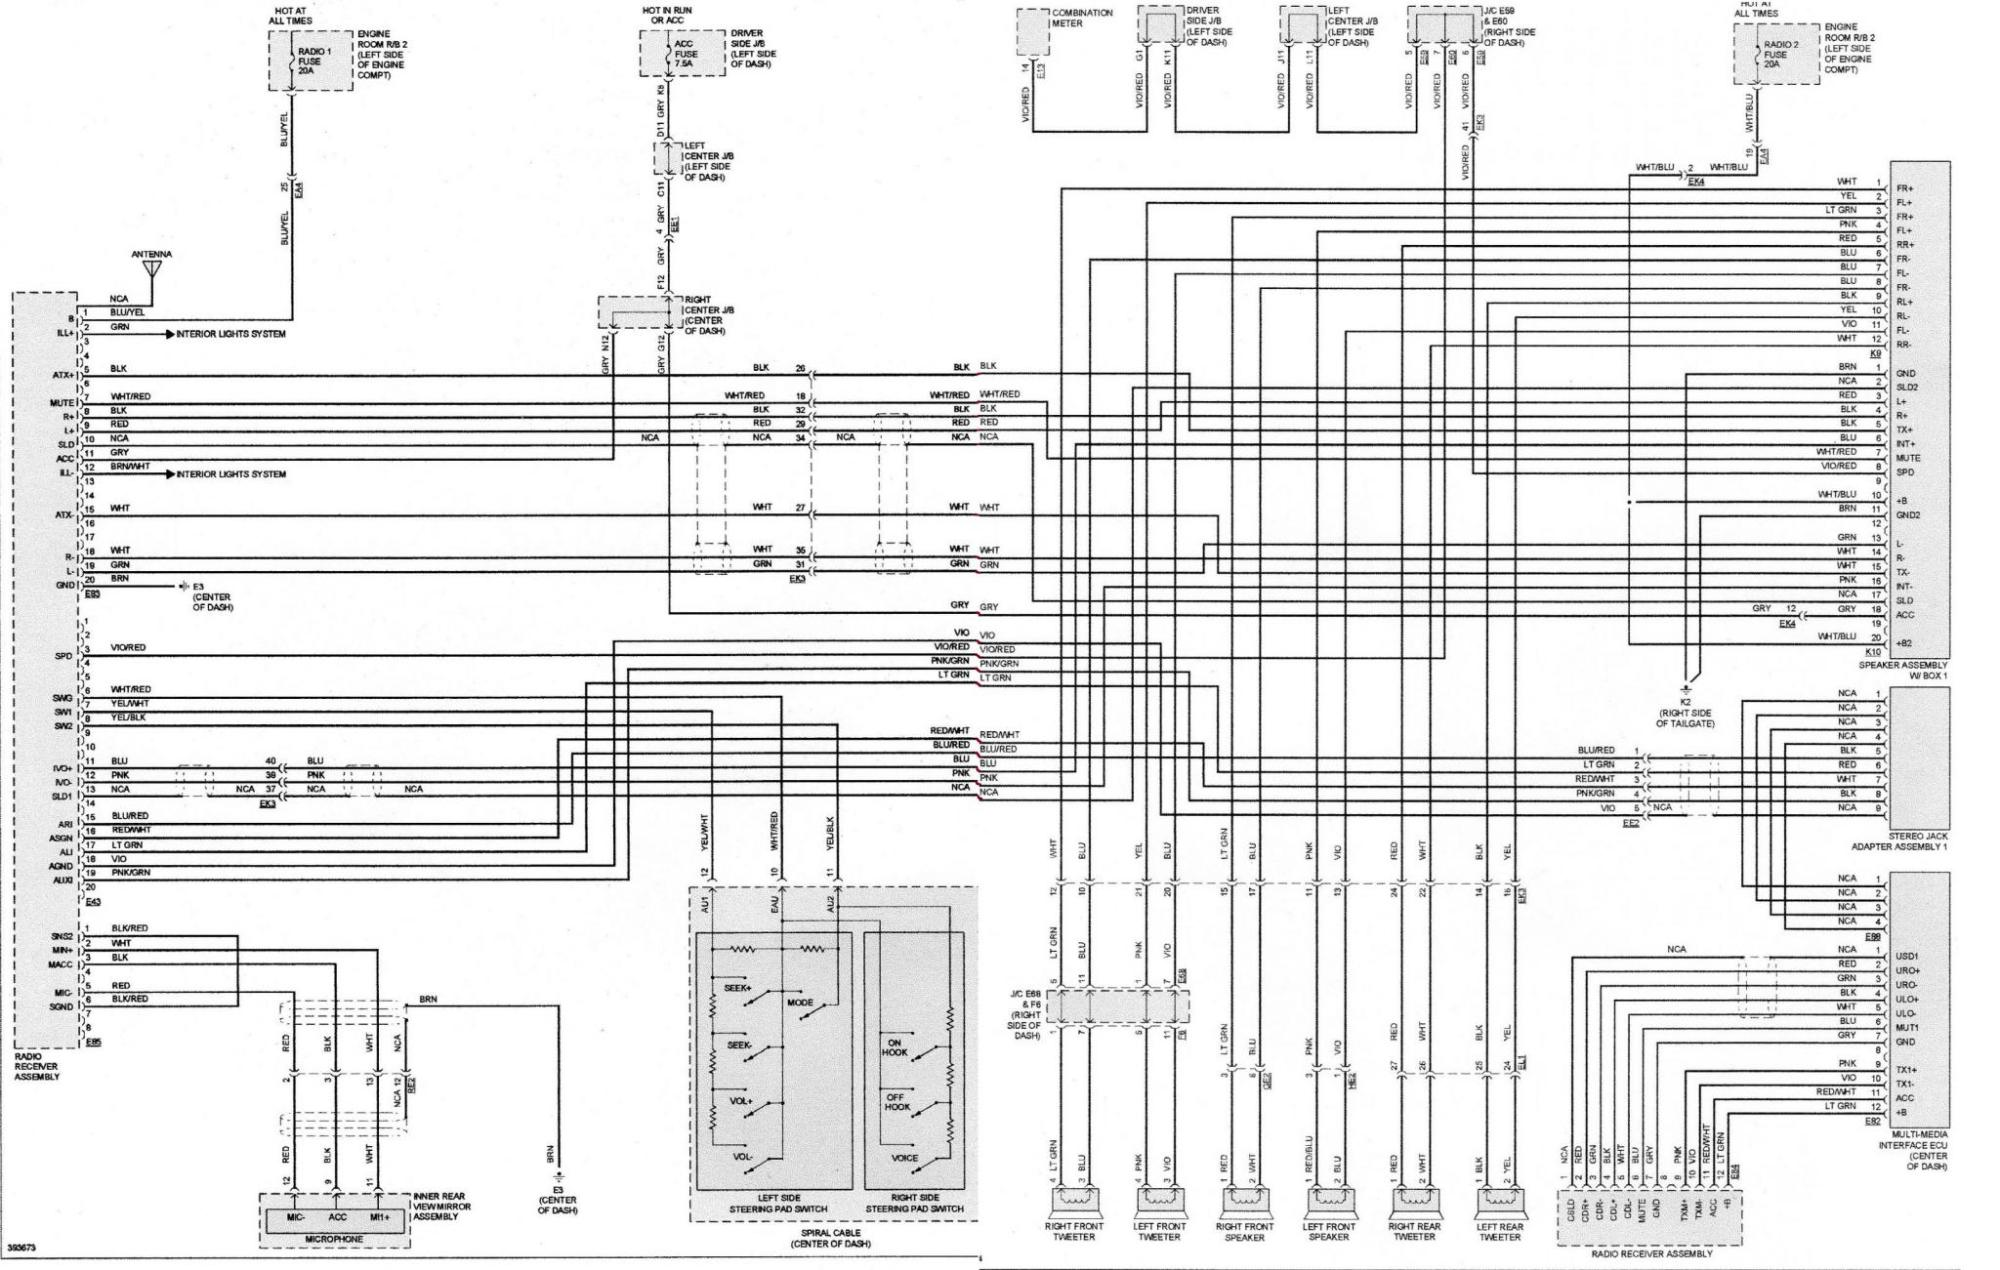 hight resolution of fj cruiser engine diagram schema wiring diagram fj cruiser engine part diagram